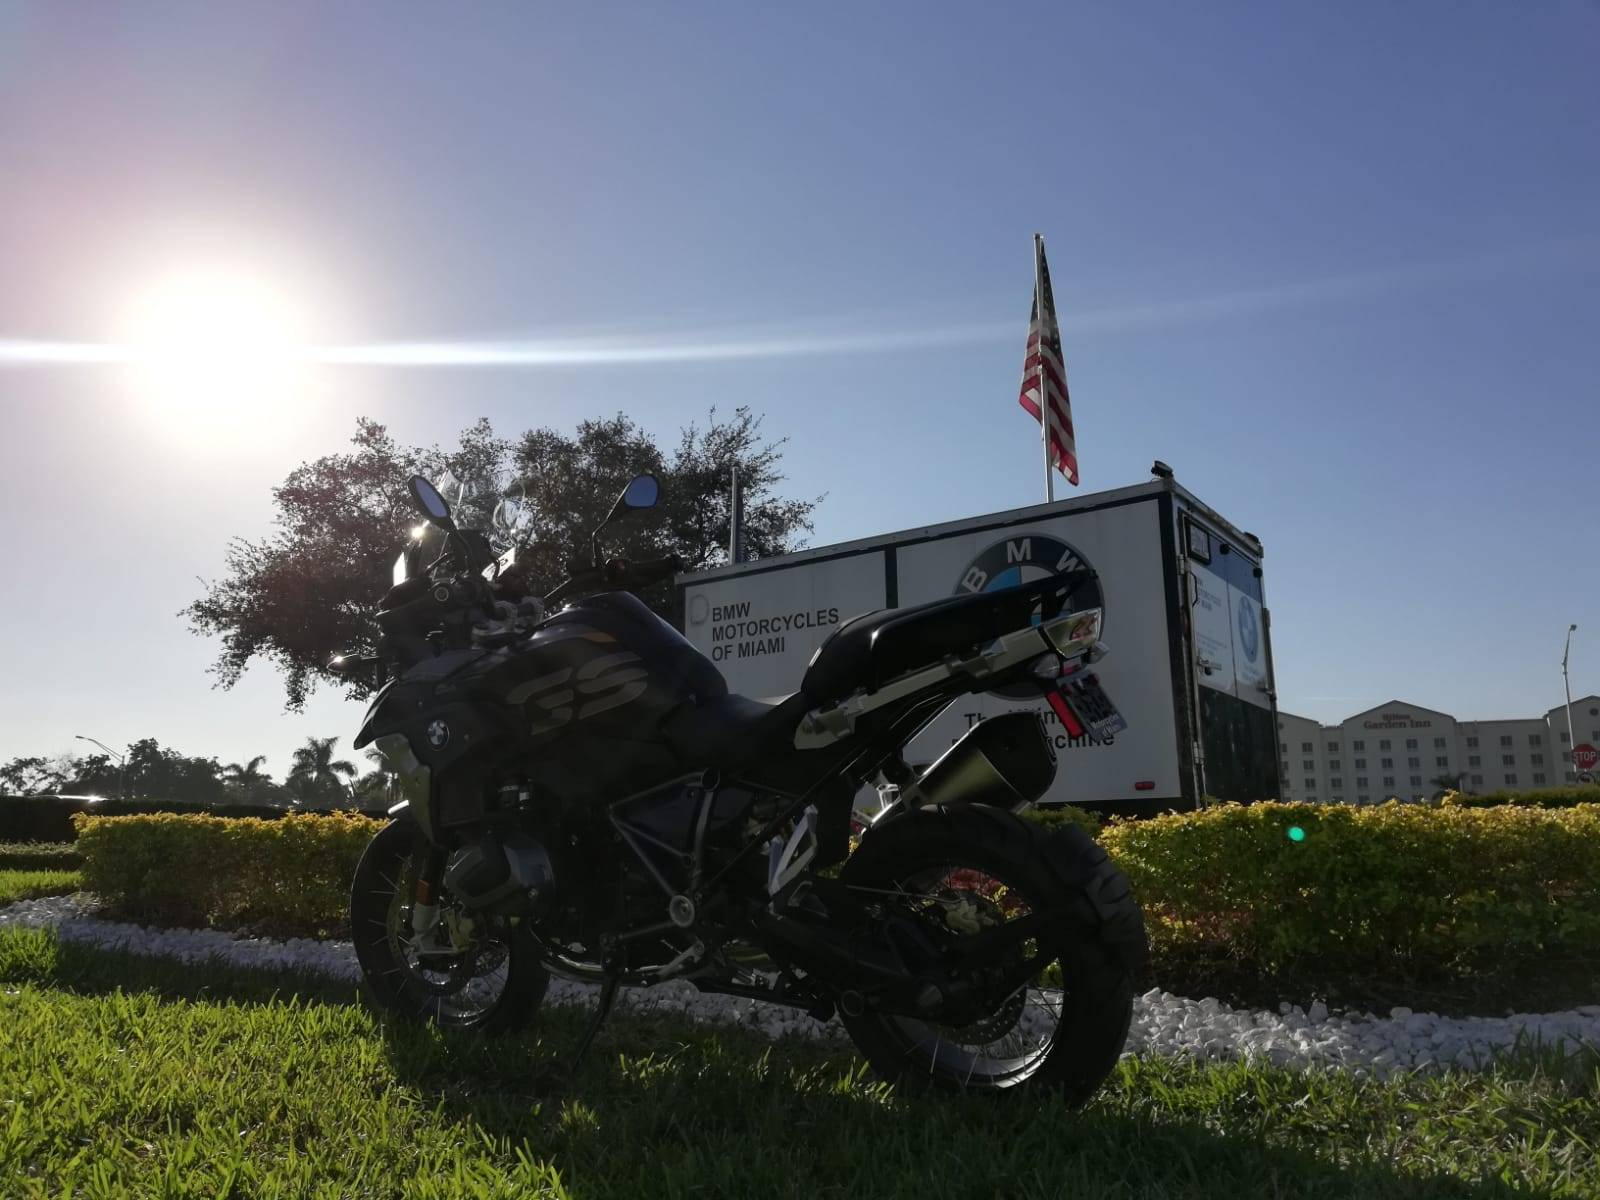 New 2019 BMW R 1250 GS for sale, BMW R 1250GS for sale, BMW Motorcycle GS, new BMW GS, Spirit of GS, BMW Motorcycles of Miami, Motorcycles of Miami, Motorcycles Miami, New Motorcycles, Used Motorcycles, pre-owned. #BMWMotorcyclesOfMiami #MotorcyclesOfMiami. - Photo 8